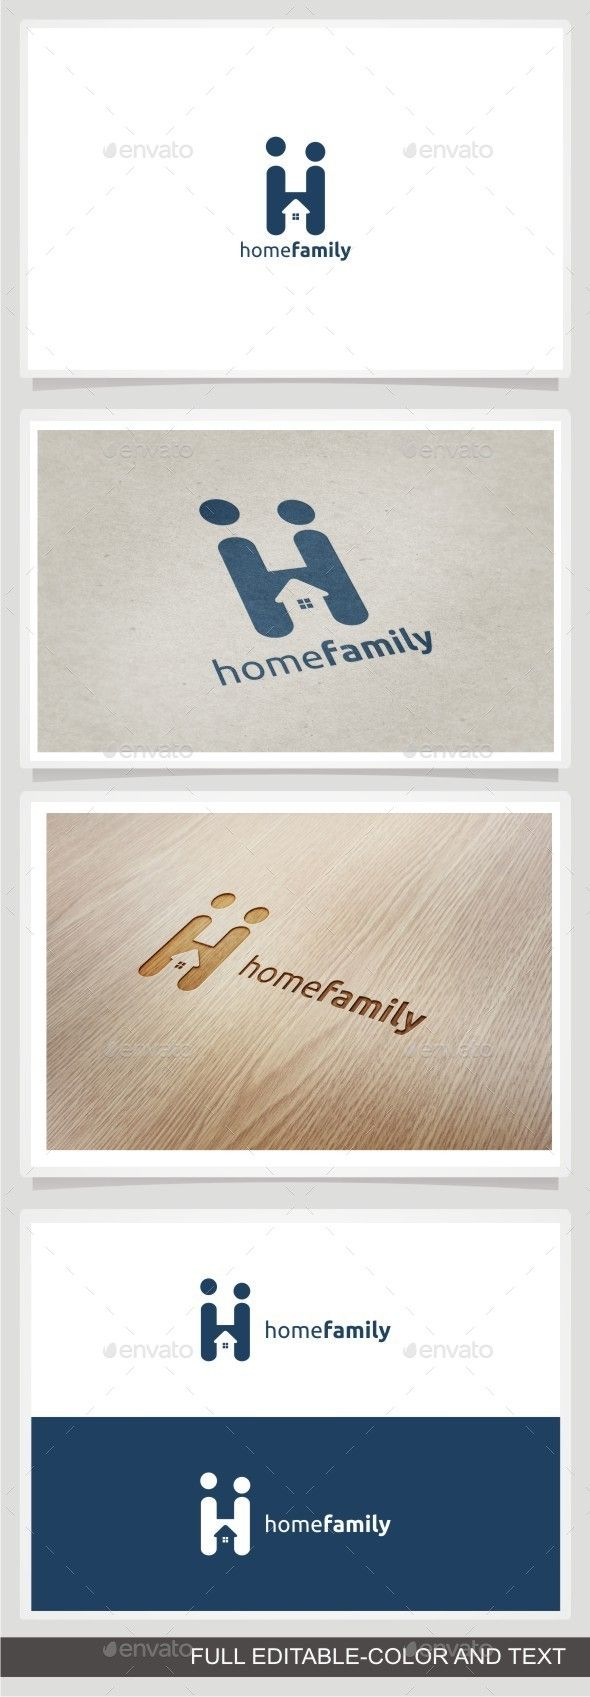 Home Family Logo Design Template Vector #logotype Download it here:  http://graphicriver.net/item/home-family/10236123?s_rank=460?ref=nexion